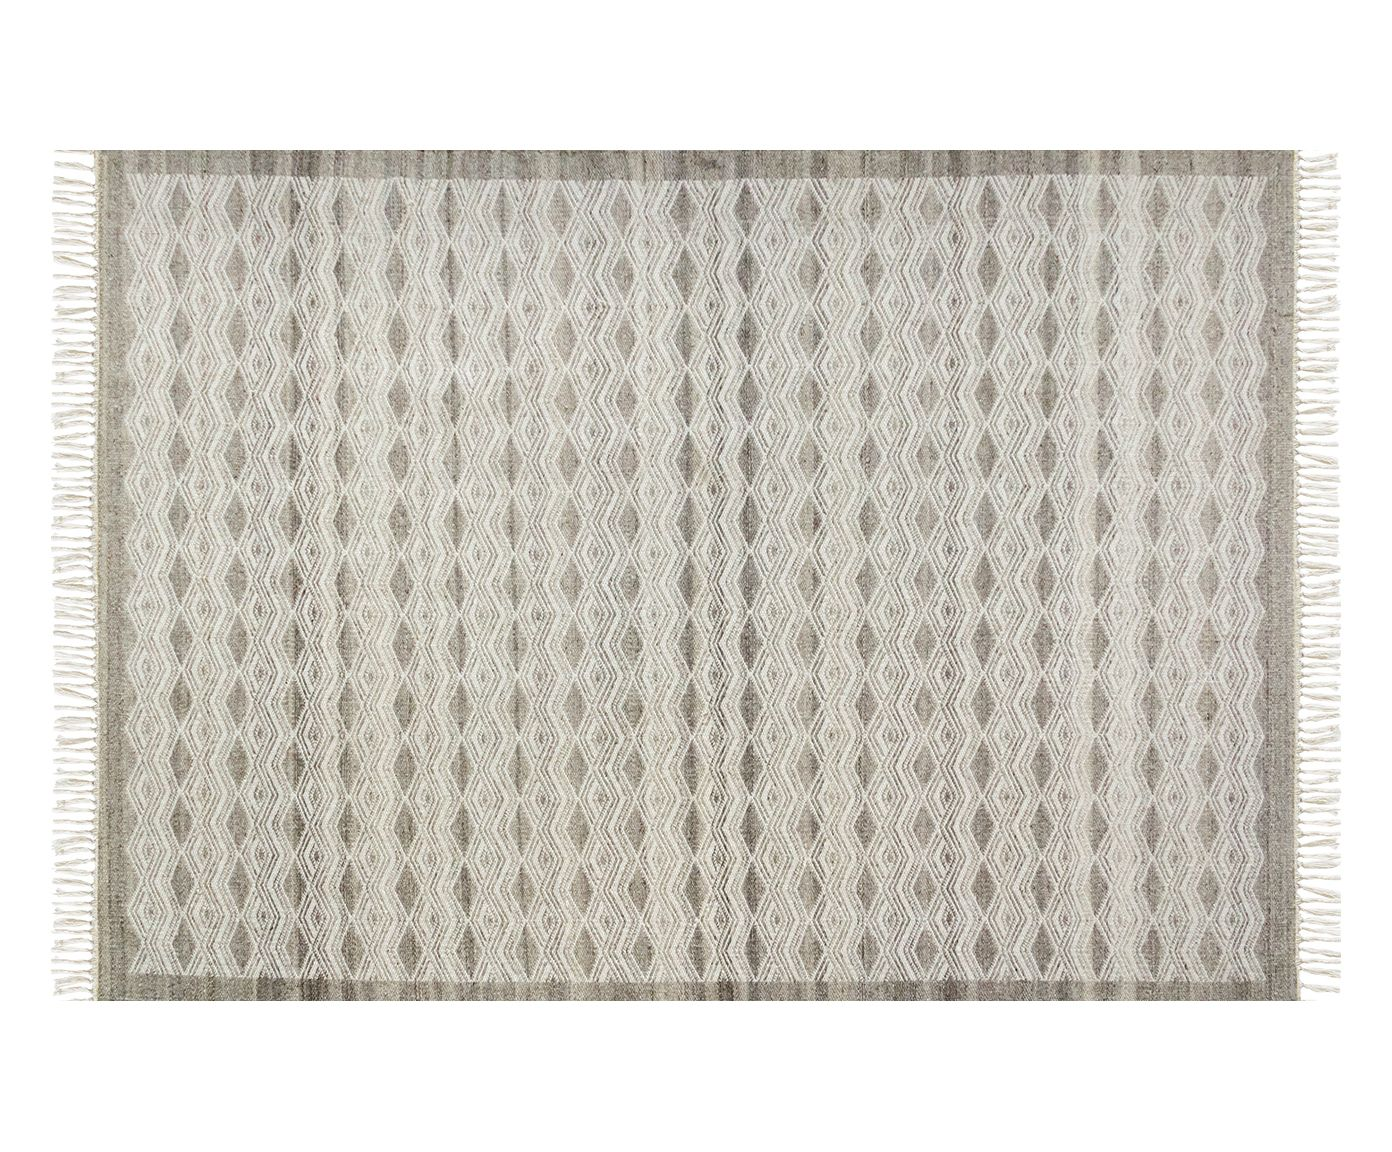 Tapete Indiano Nordic Taupe - 150X200cm | Westwing.com.br